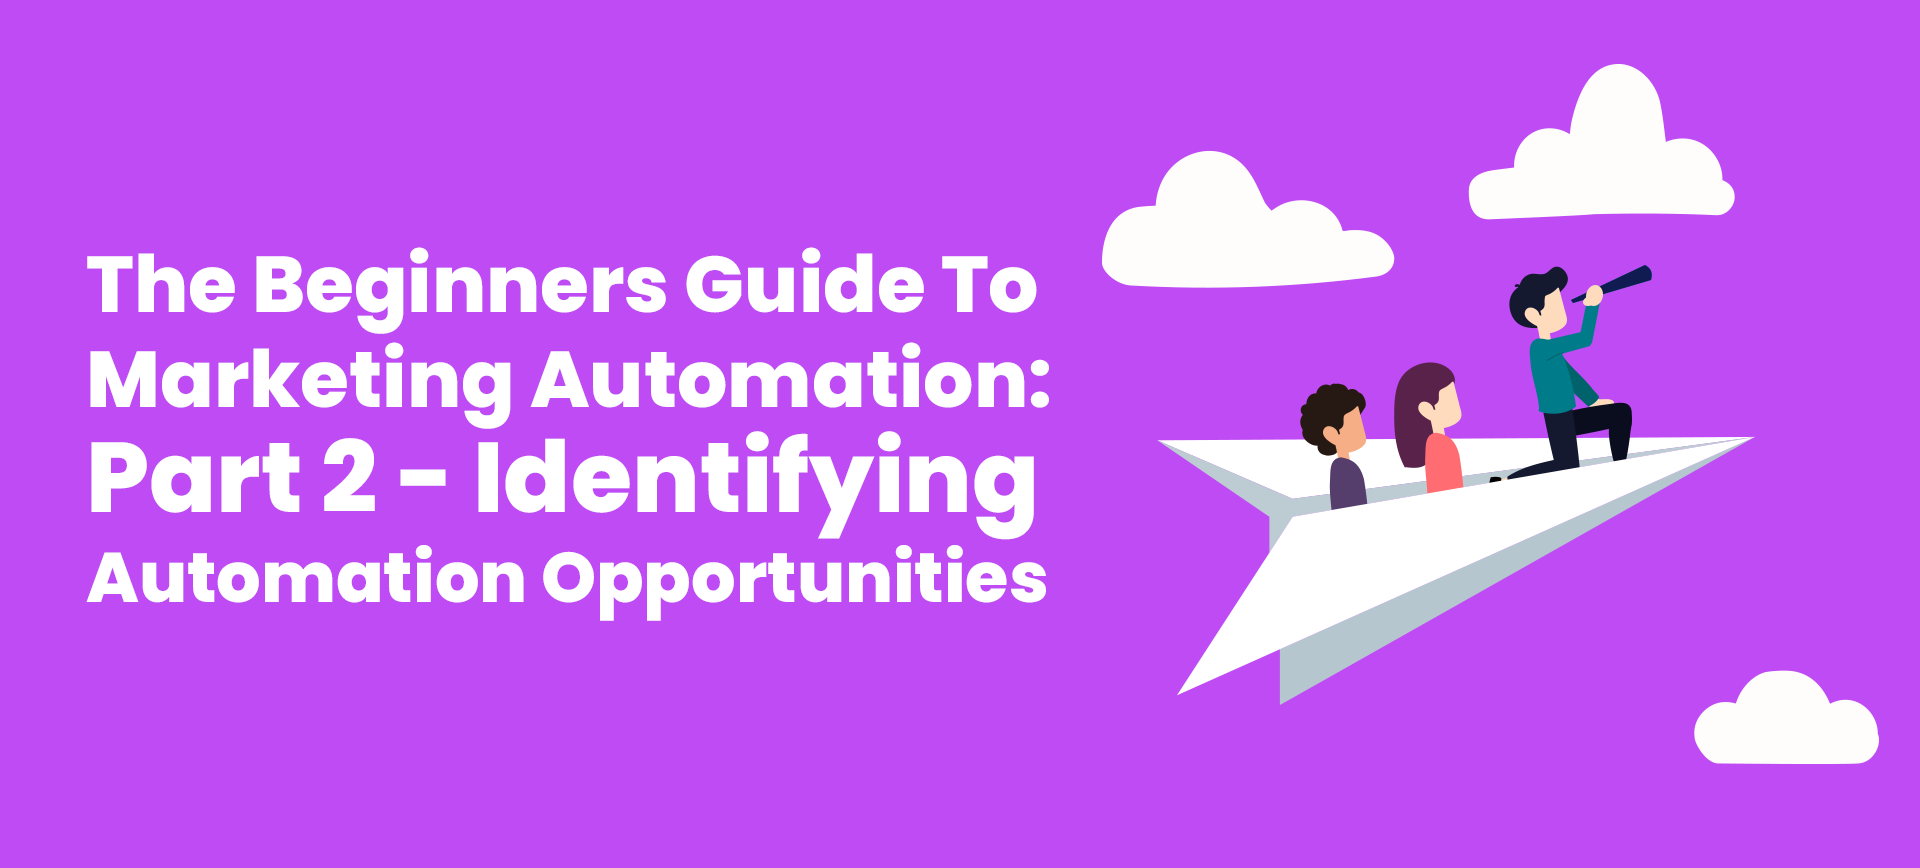 The Beginners Guide To Marketing Automation: Part 2 – Identifying Automation Opportunities